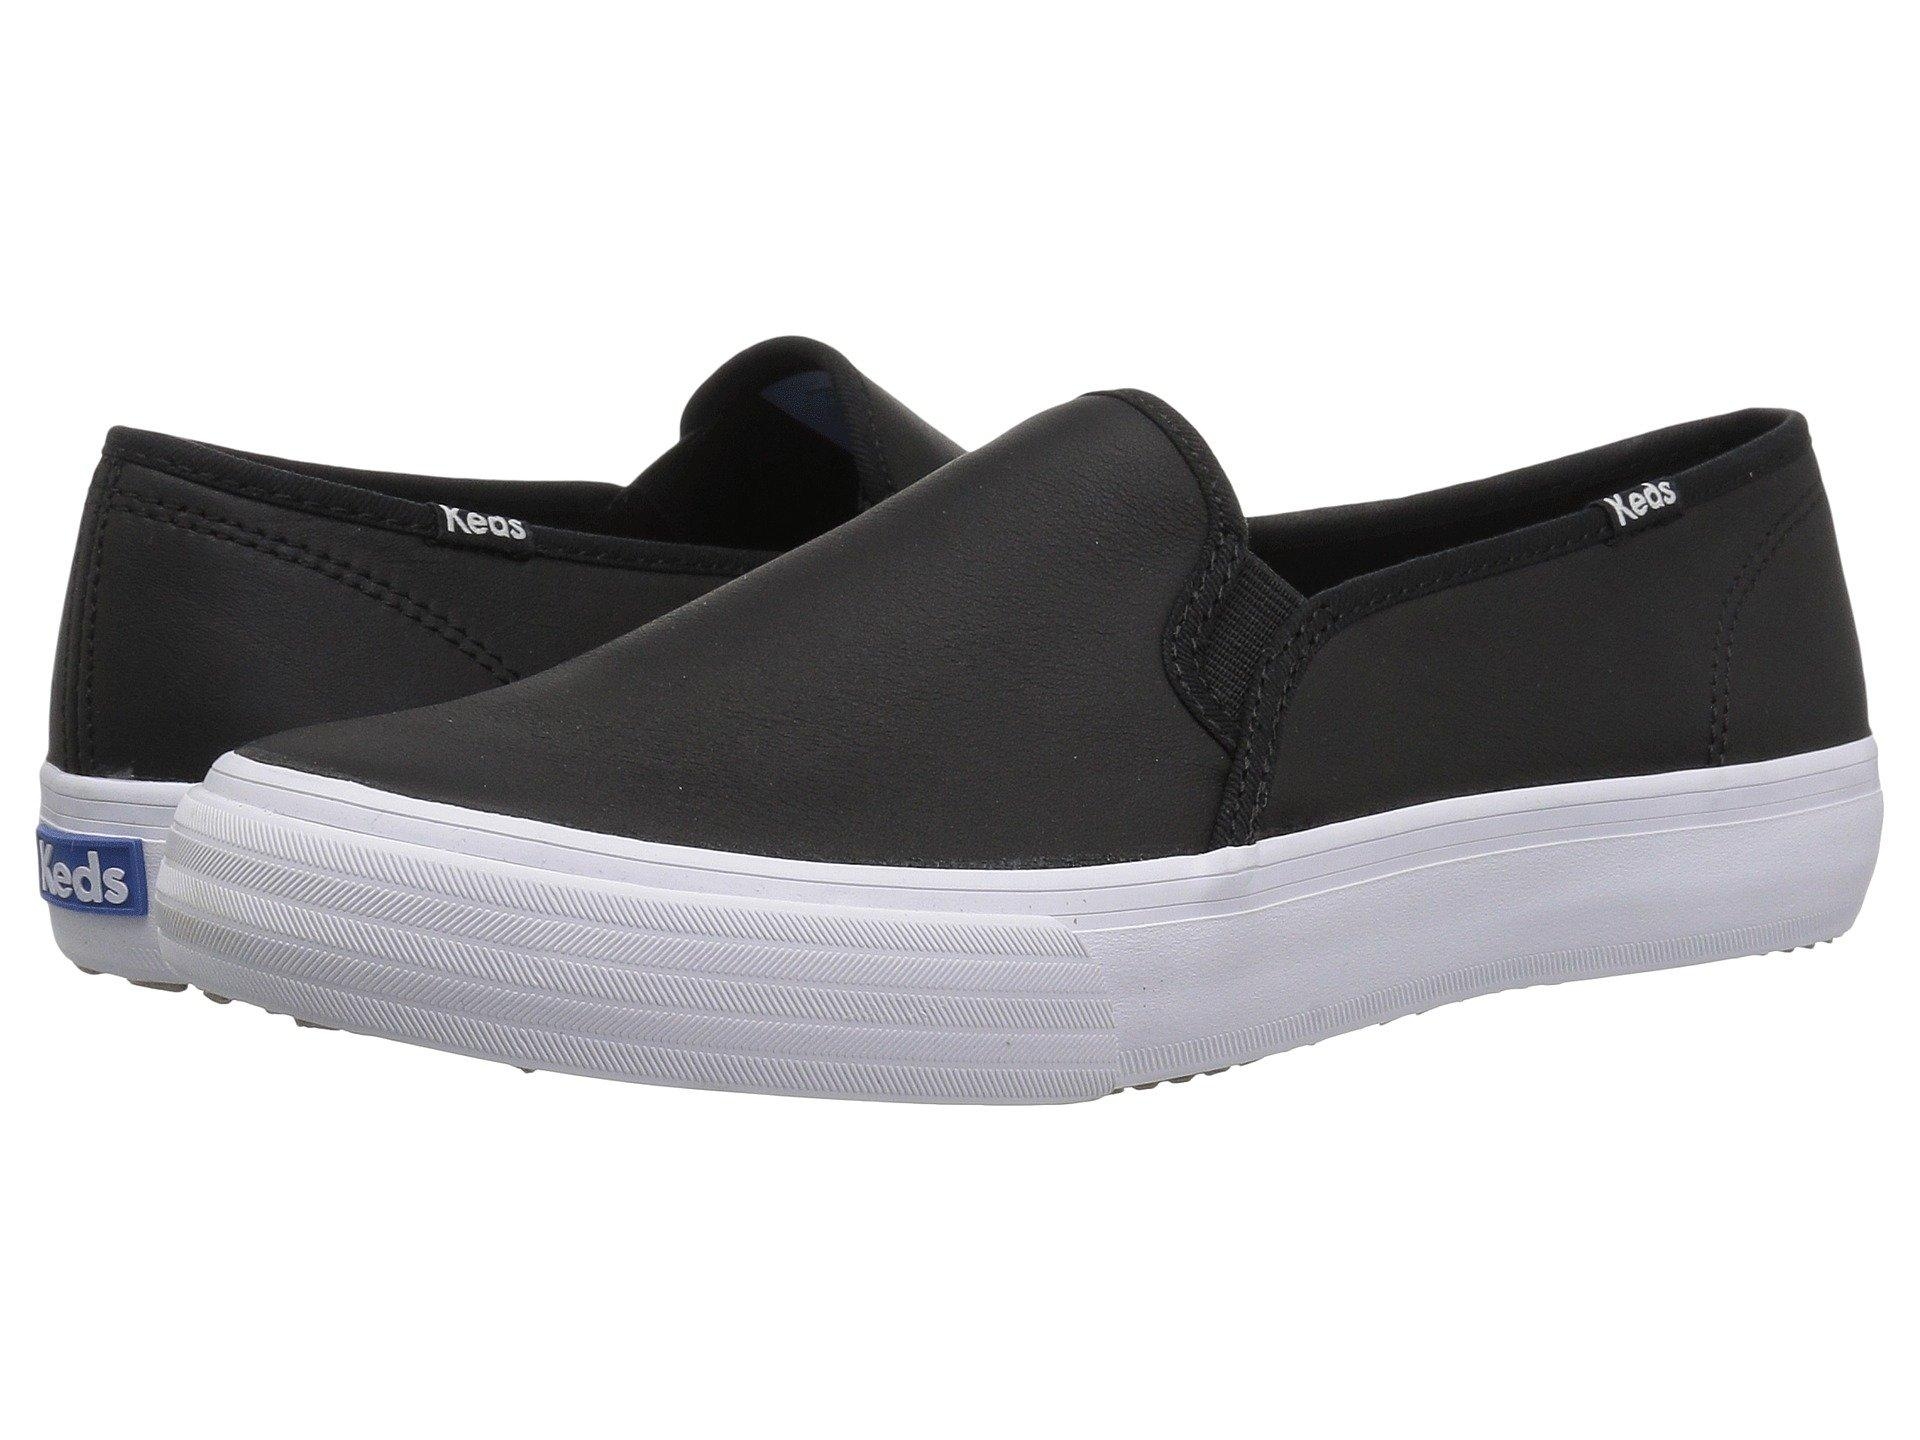 Keds Double Decker Leather in Black - Lyst